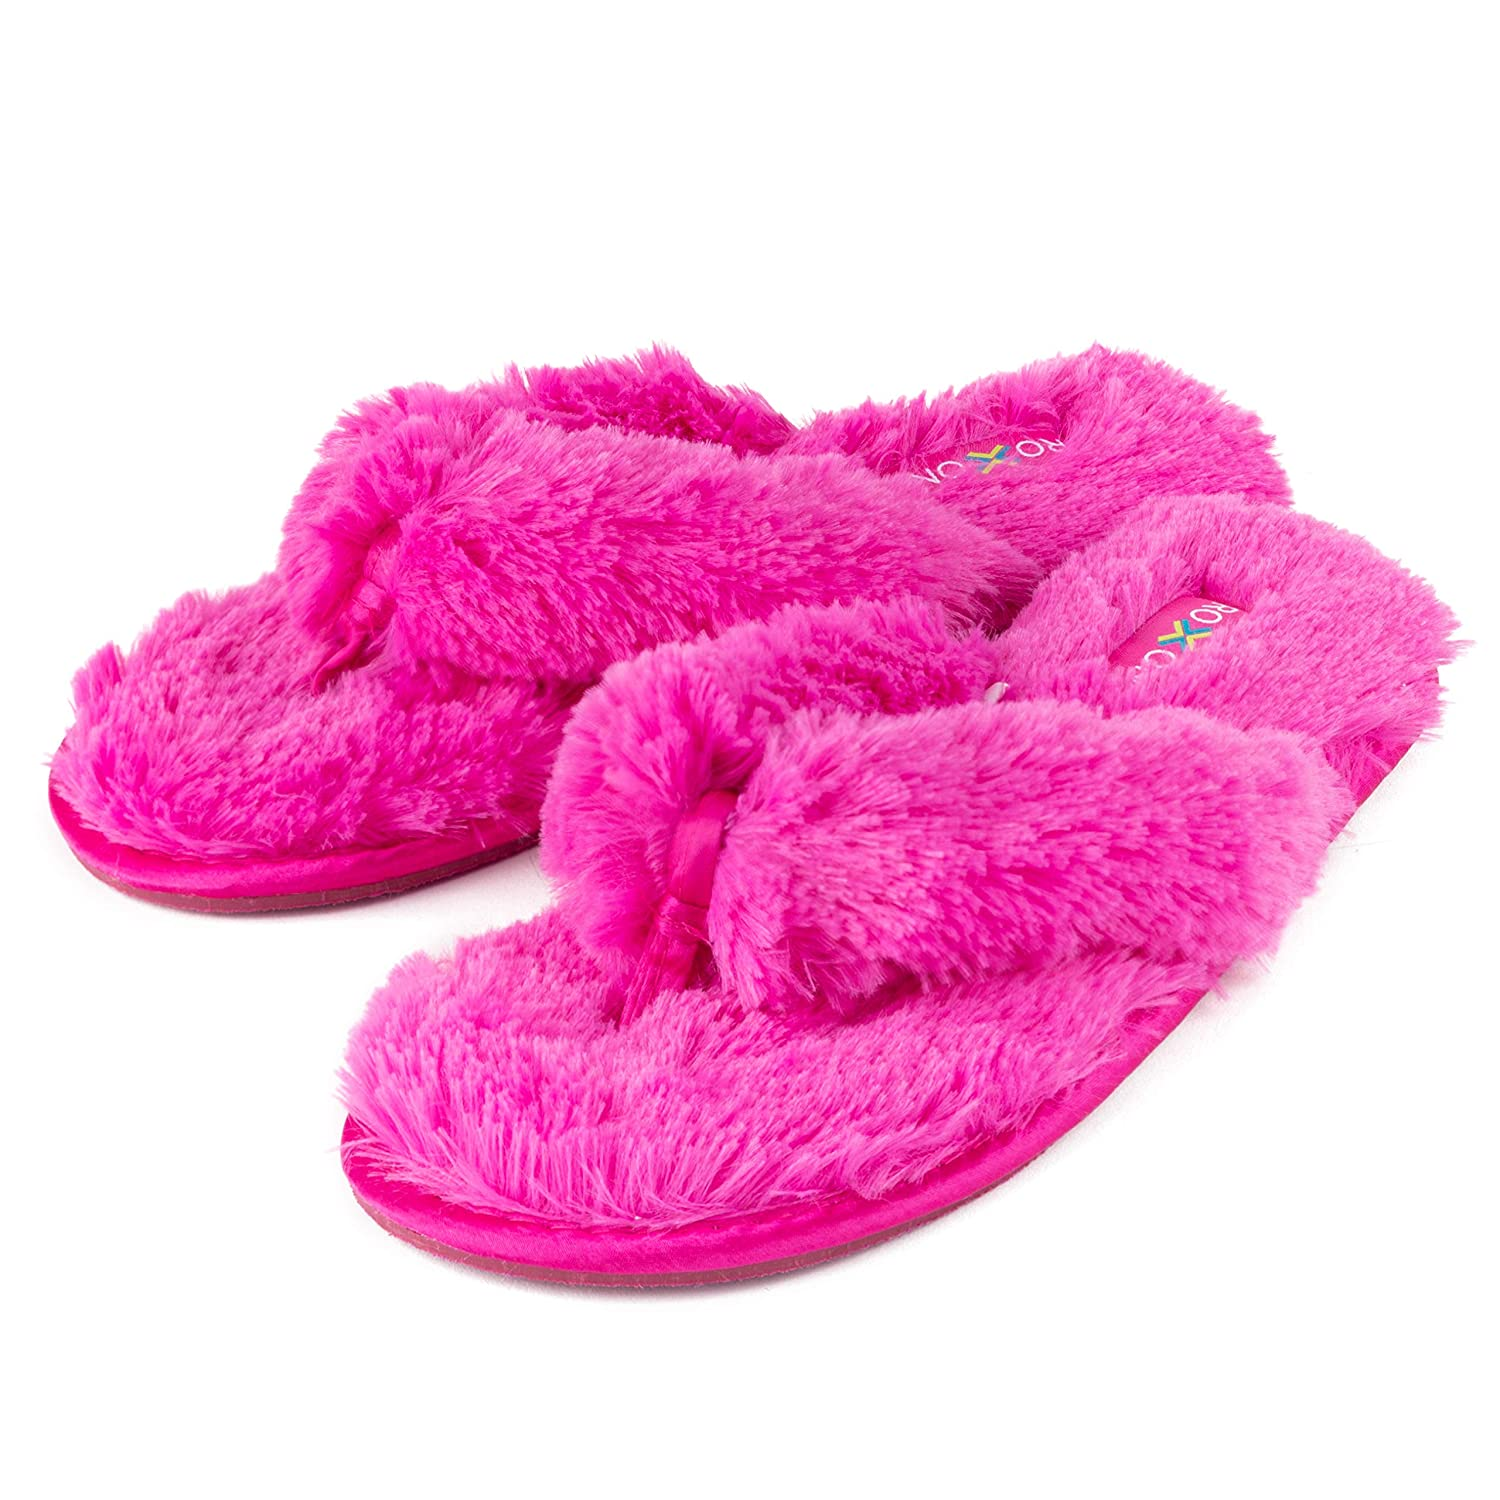 971e18edeab2 Roxoni Fuzzy House Slippers for Women – Comfortable Furry Spa Thongs – Cozy  Slip On Flip Flops - Soft Insole   Rubber Outsole - Casual Women s Shoes